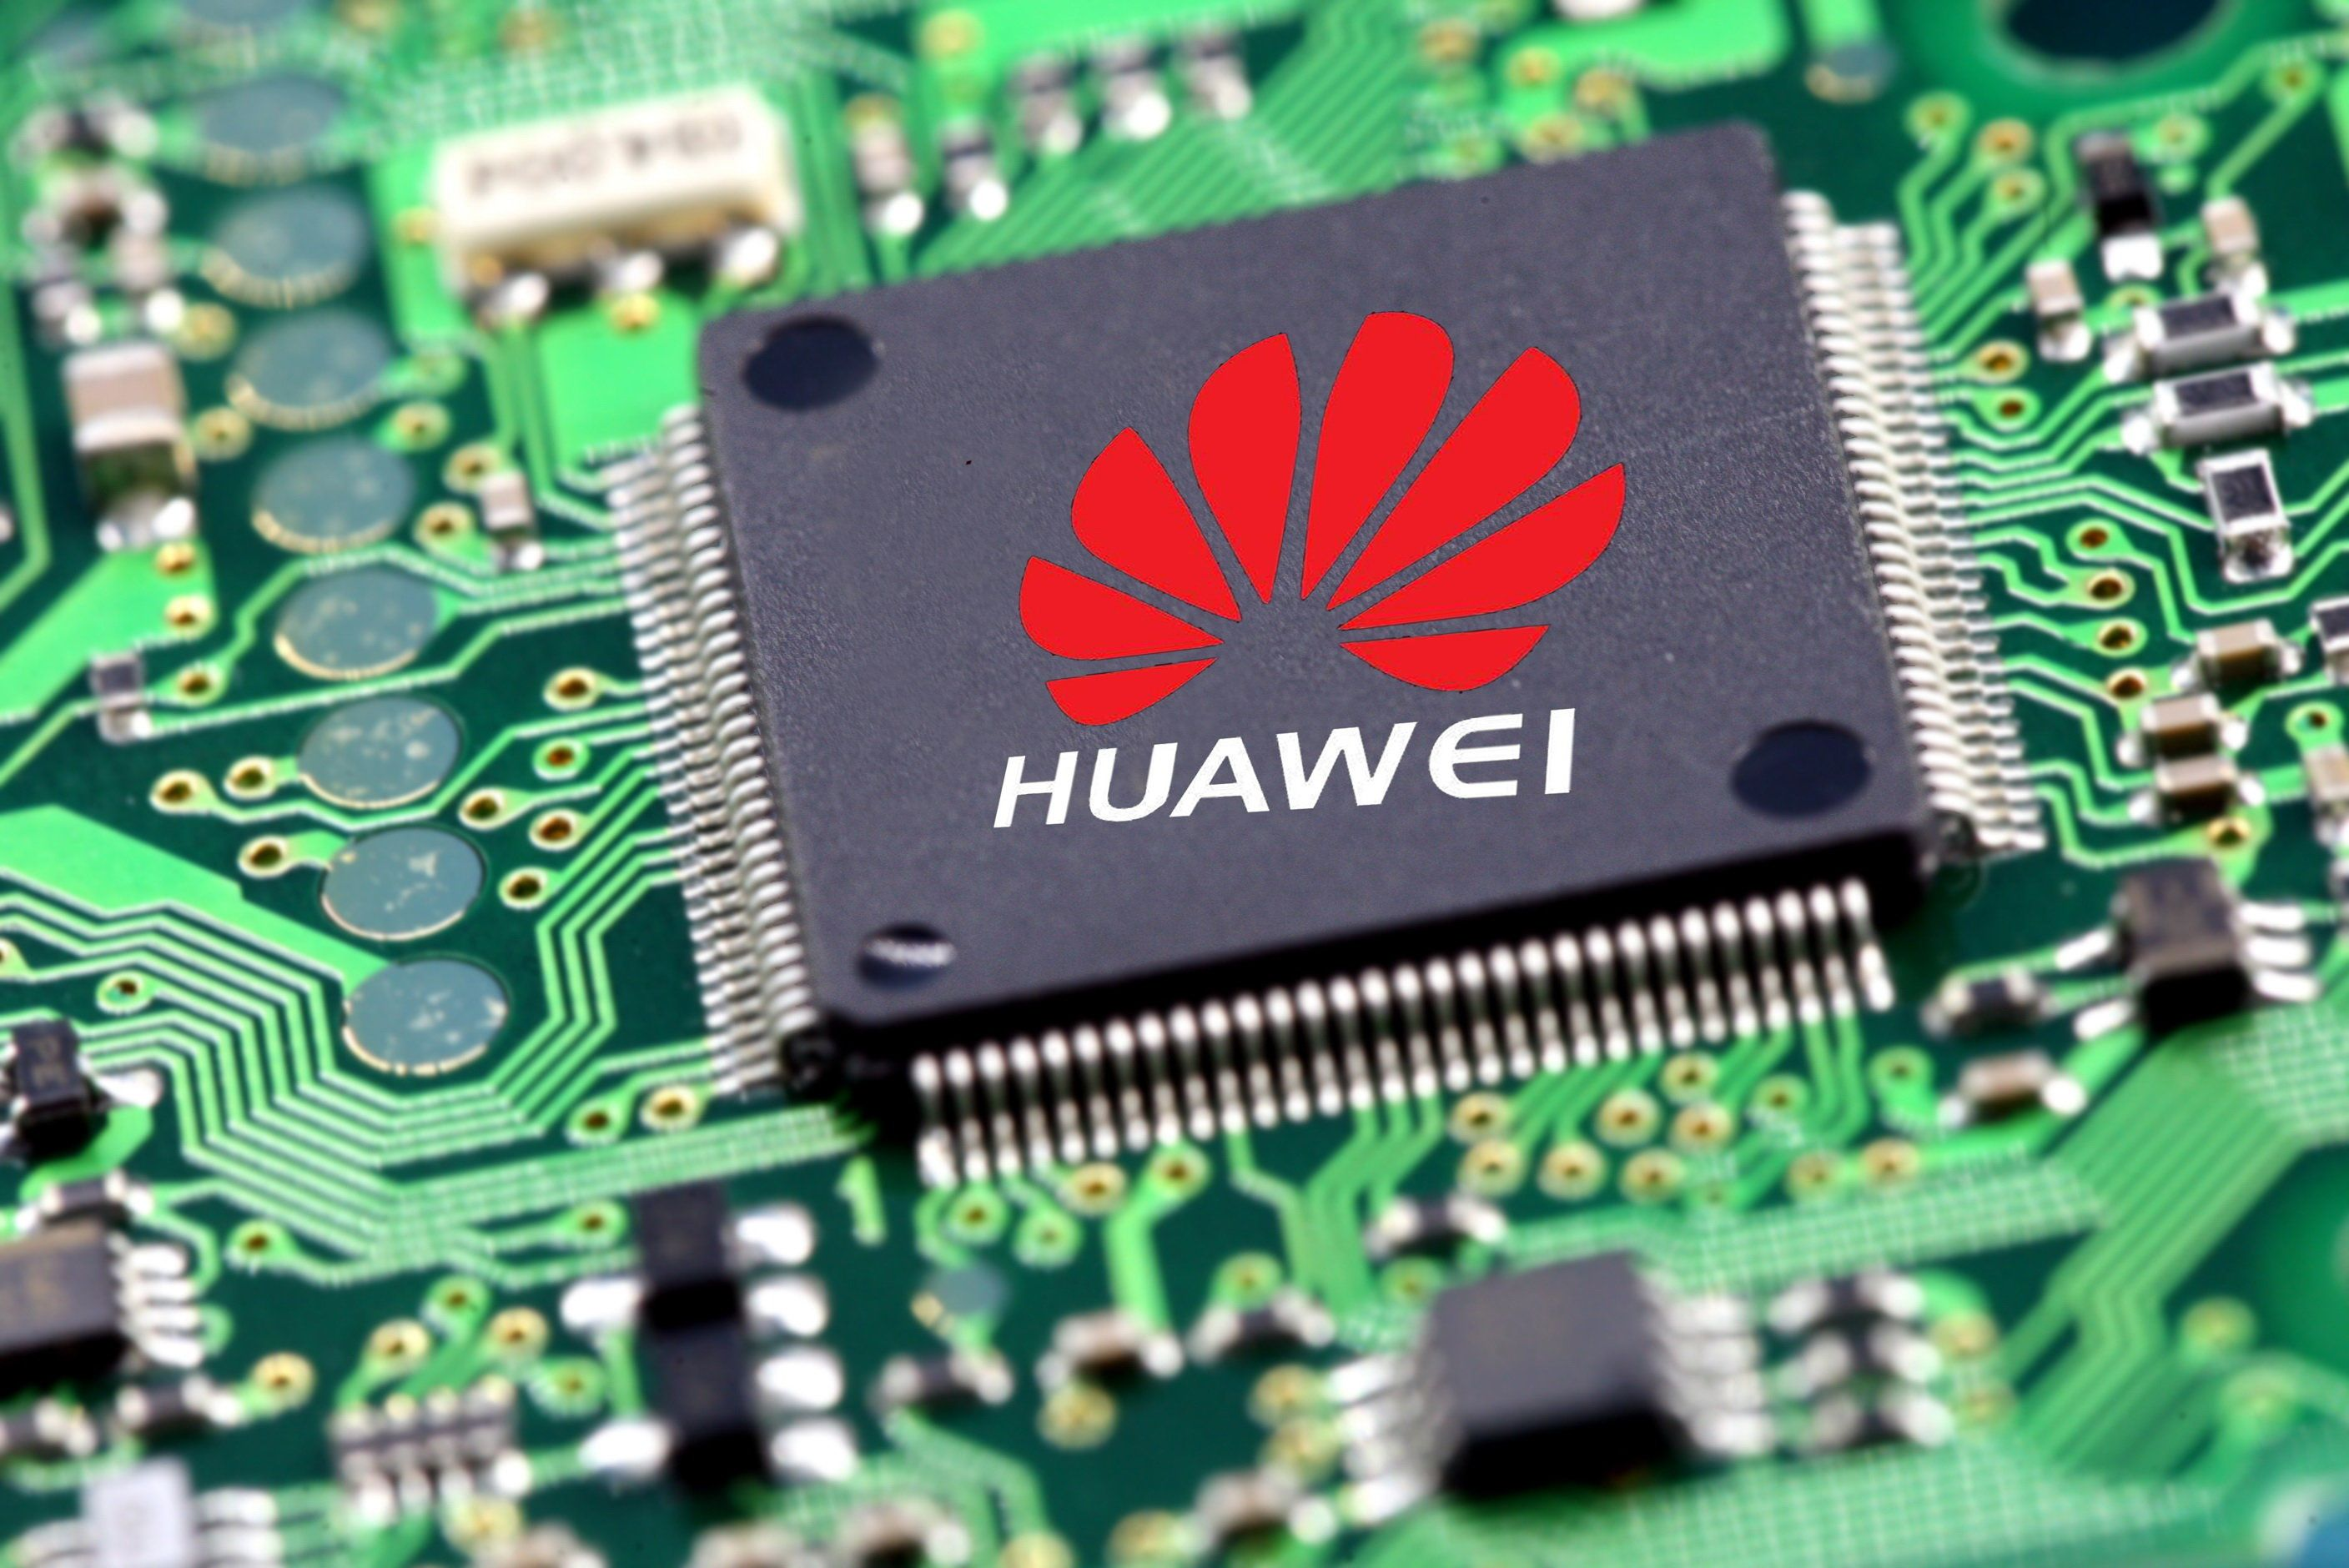 Can Huawei Go Its Own Way?